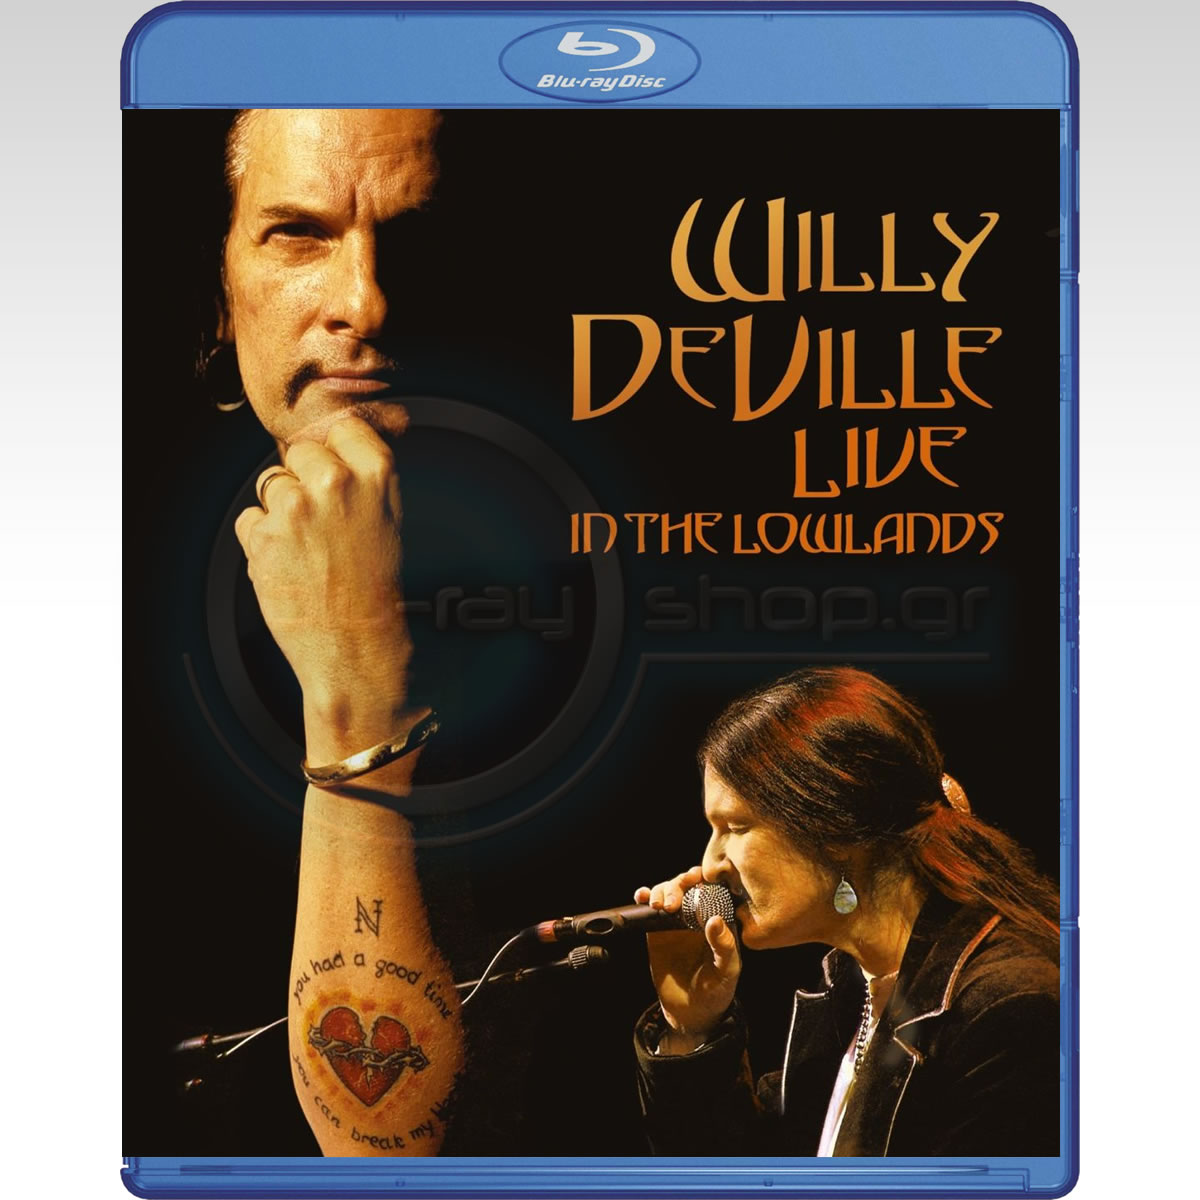 WILLY DEVILLE: LIVE IN THE LOWLANDS (BLU-RAY)